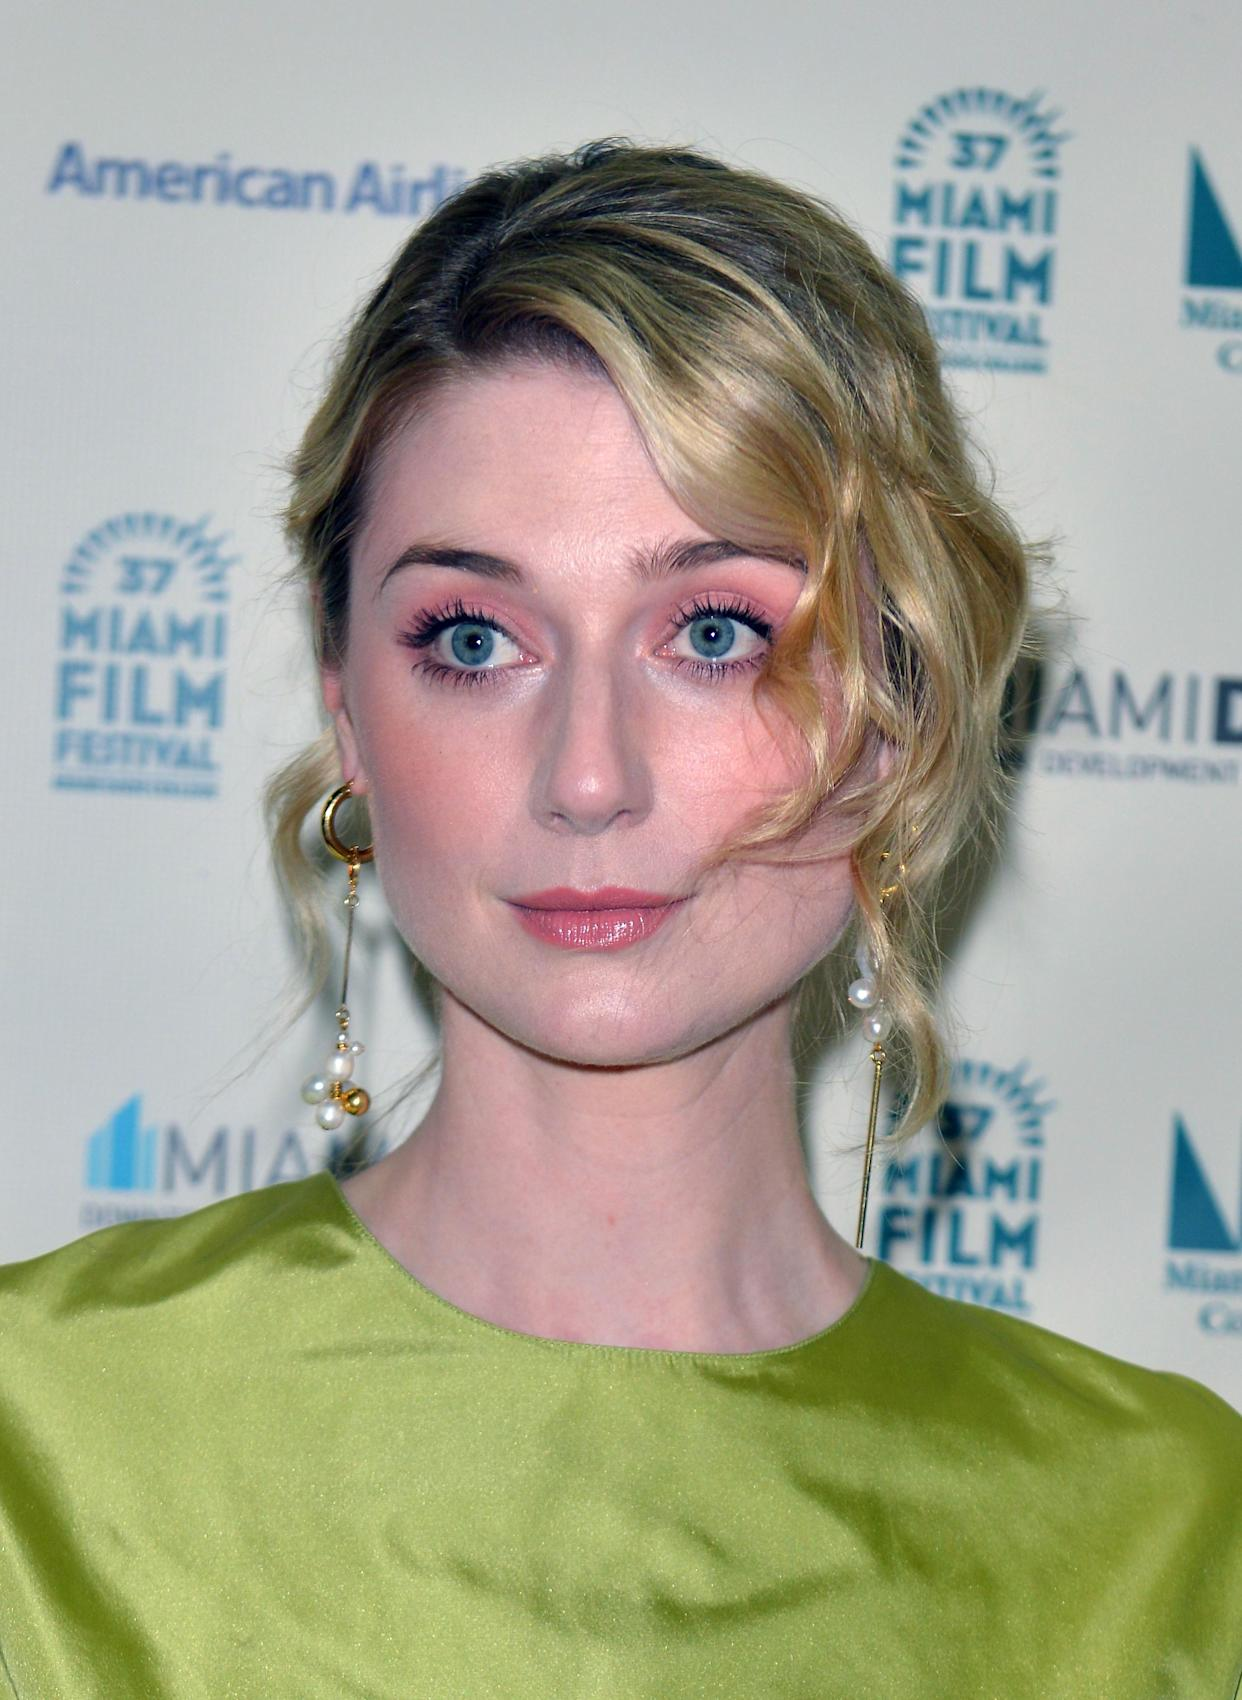 MIAMI, FL - MARCH 06:  Actress Elizabeth Debicki is seen during 37th Annual Miami Film Festival presented by Miami Dade College opening night Film, 'The Burnt Orange Heresy' at Olympia Theater At Gusman Hall on March 6, 2020 in Miami, Florida.  (Photo by Johnny Louis/Getty Images)